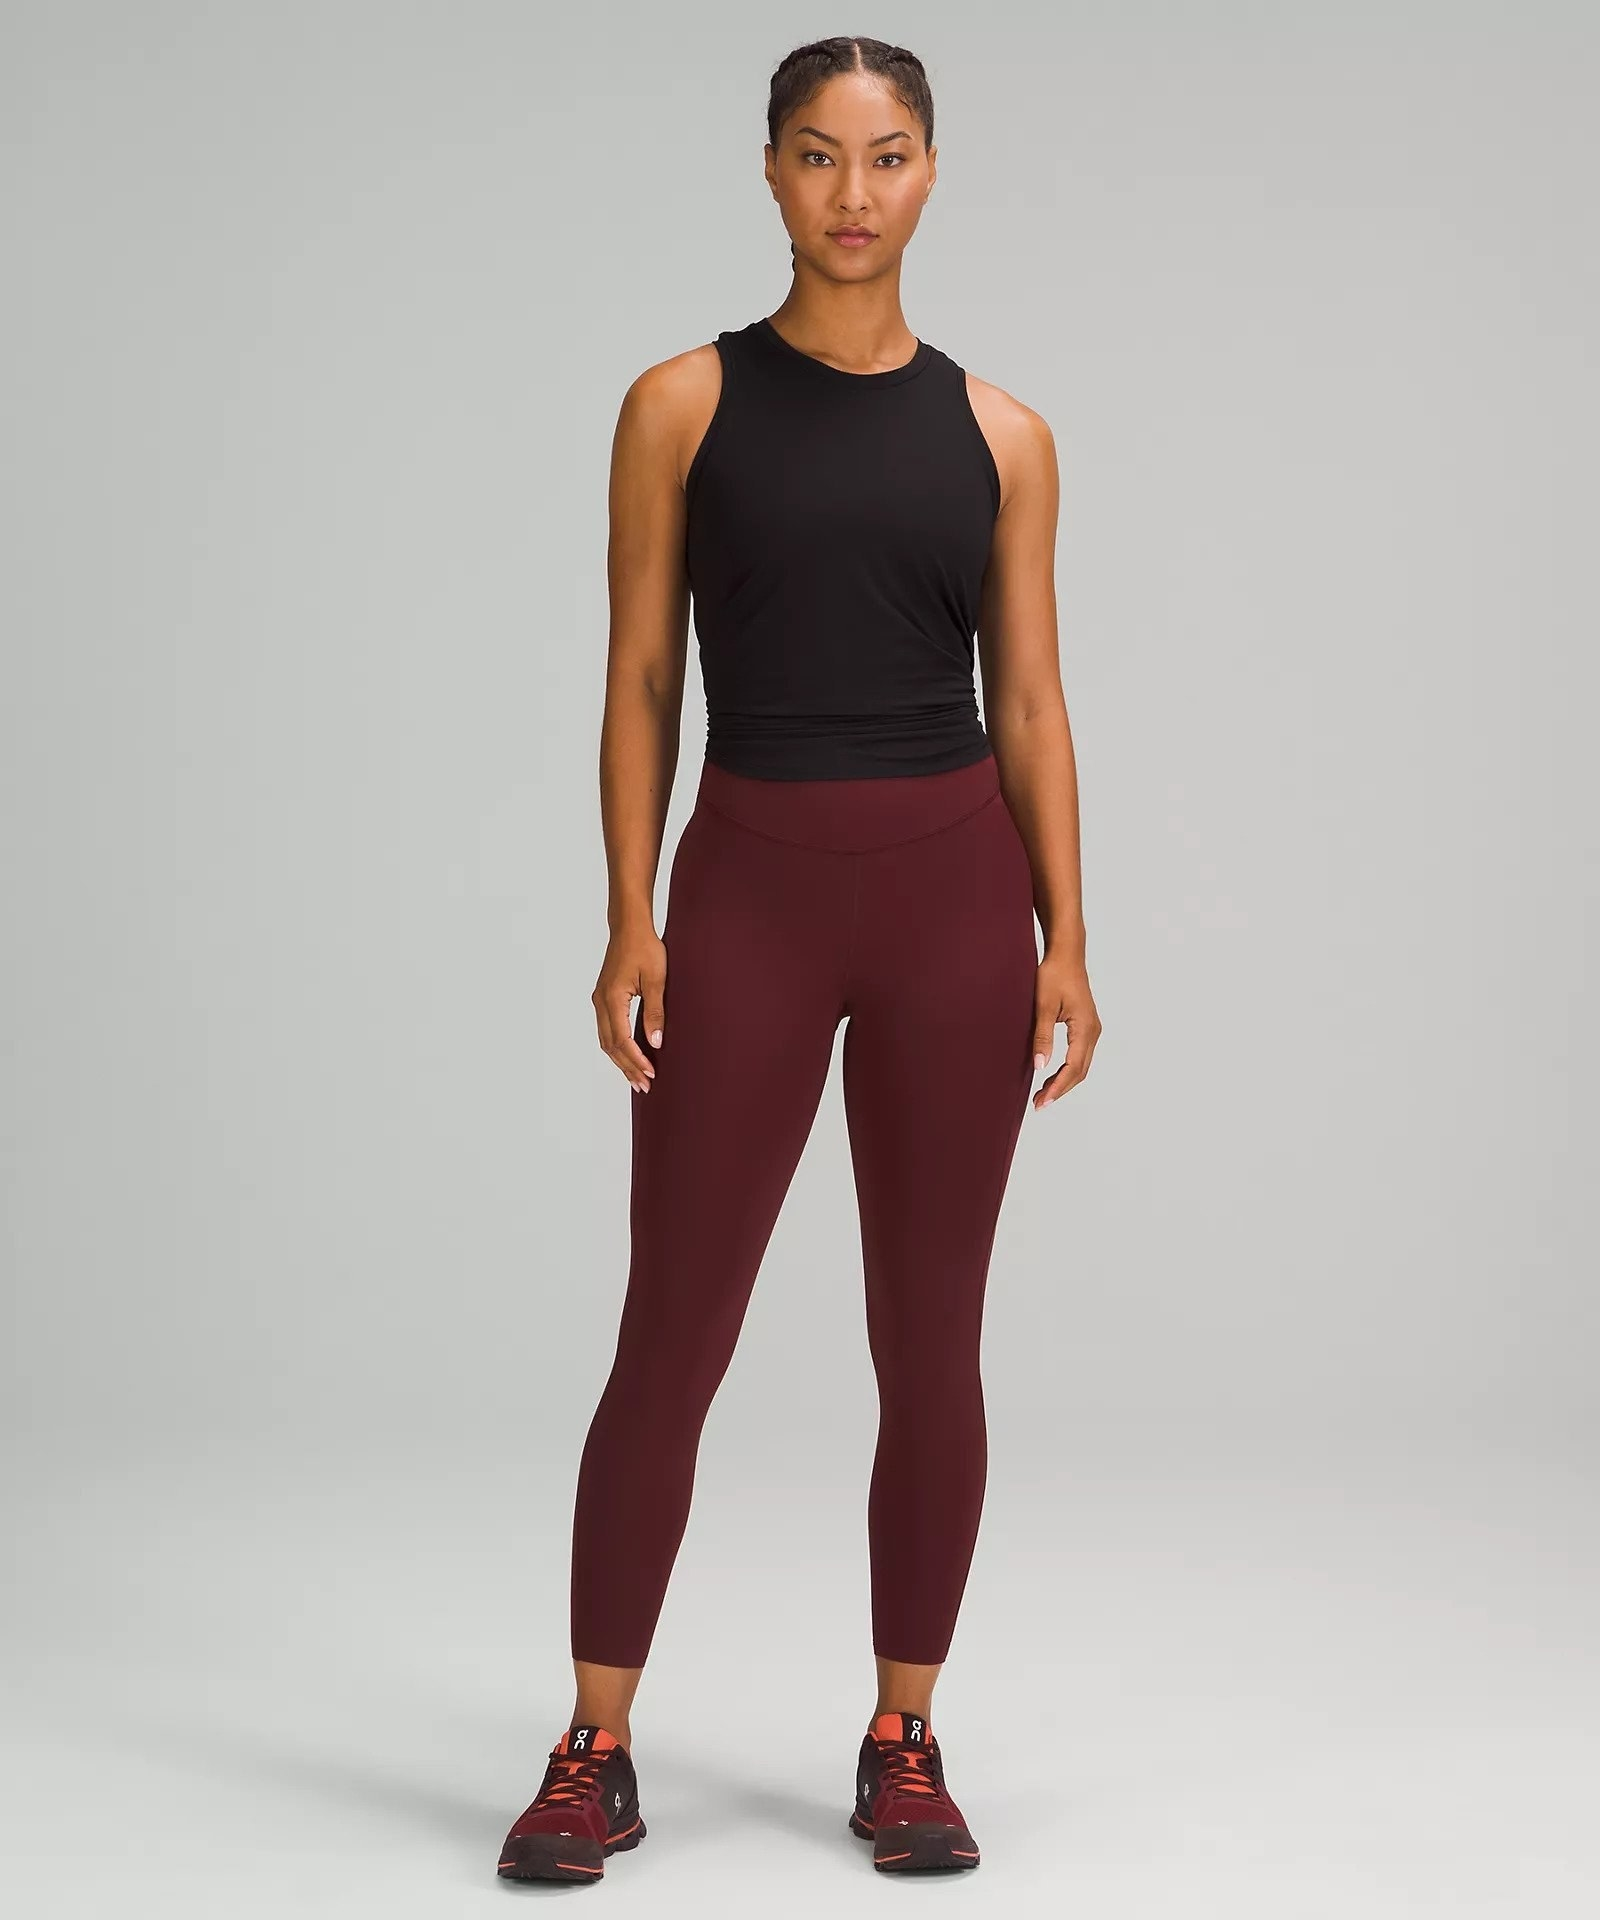 model in dark red cropped high-rise running tights and a black workout tank top